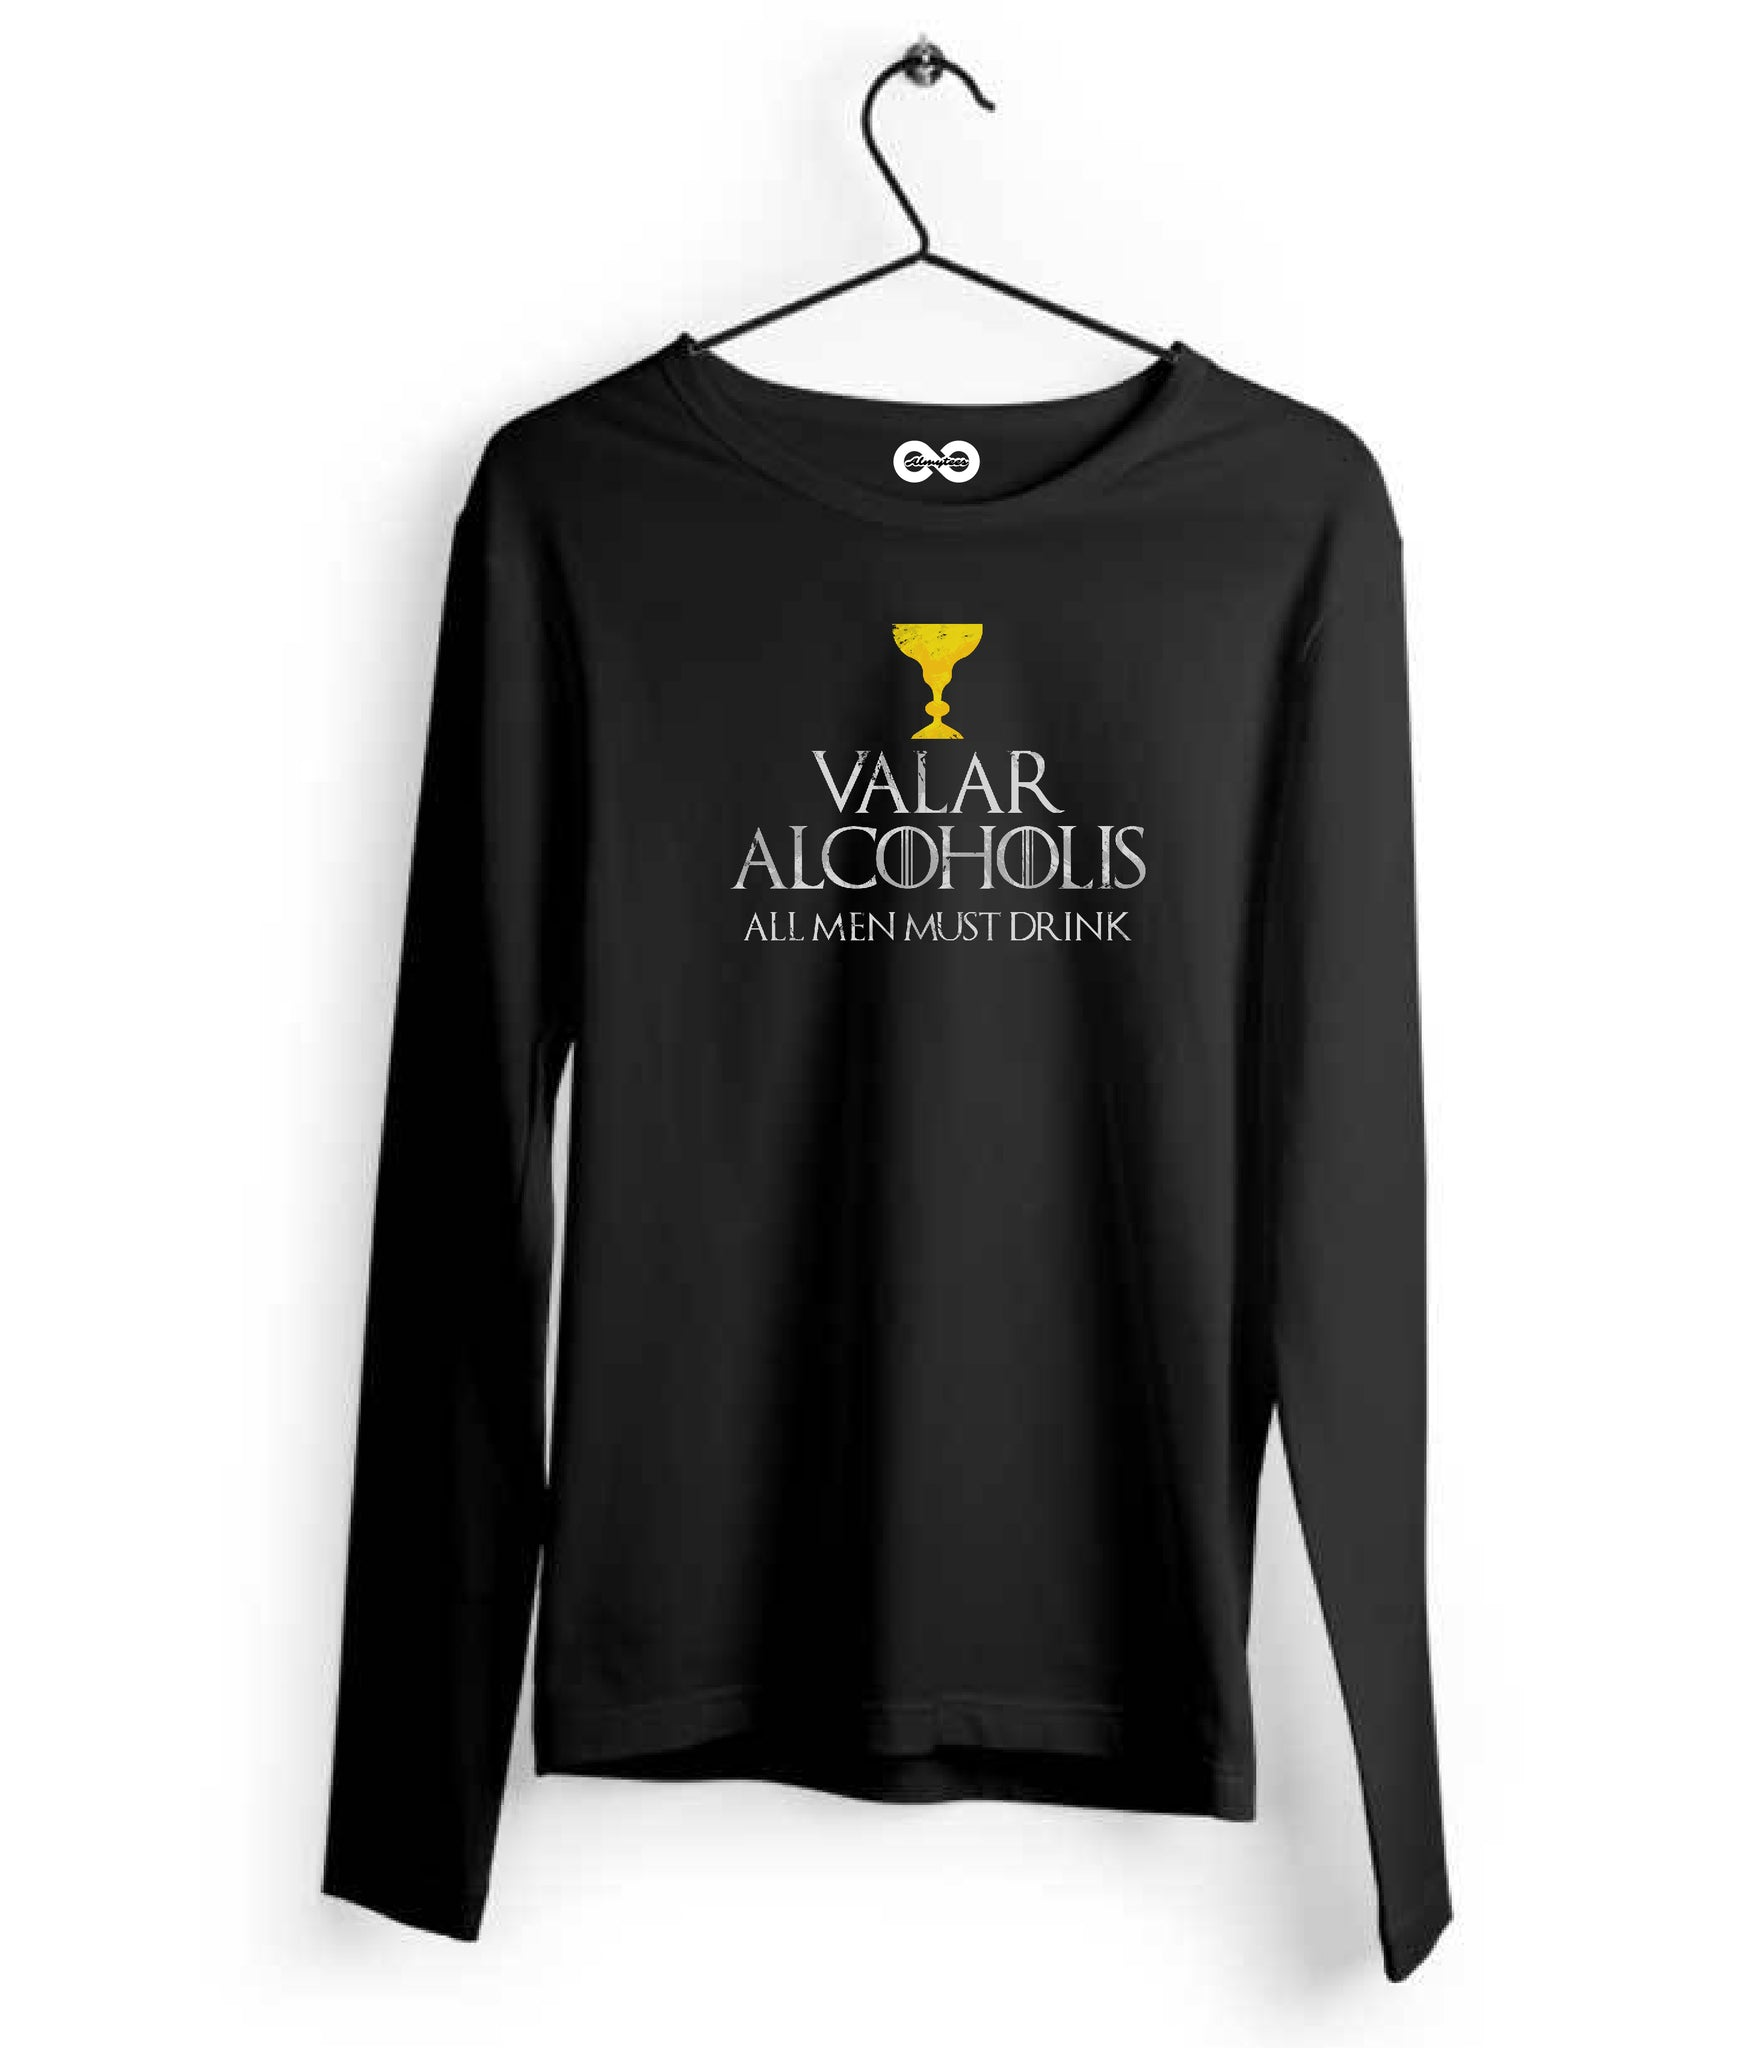 Valar Alcoholis Long Sleeves - Almytees